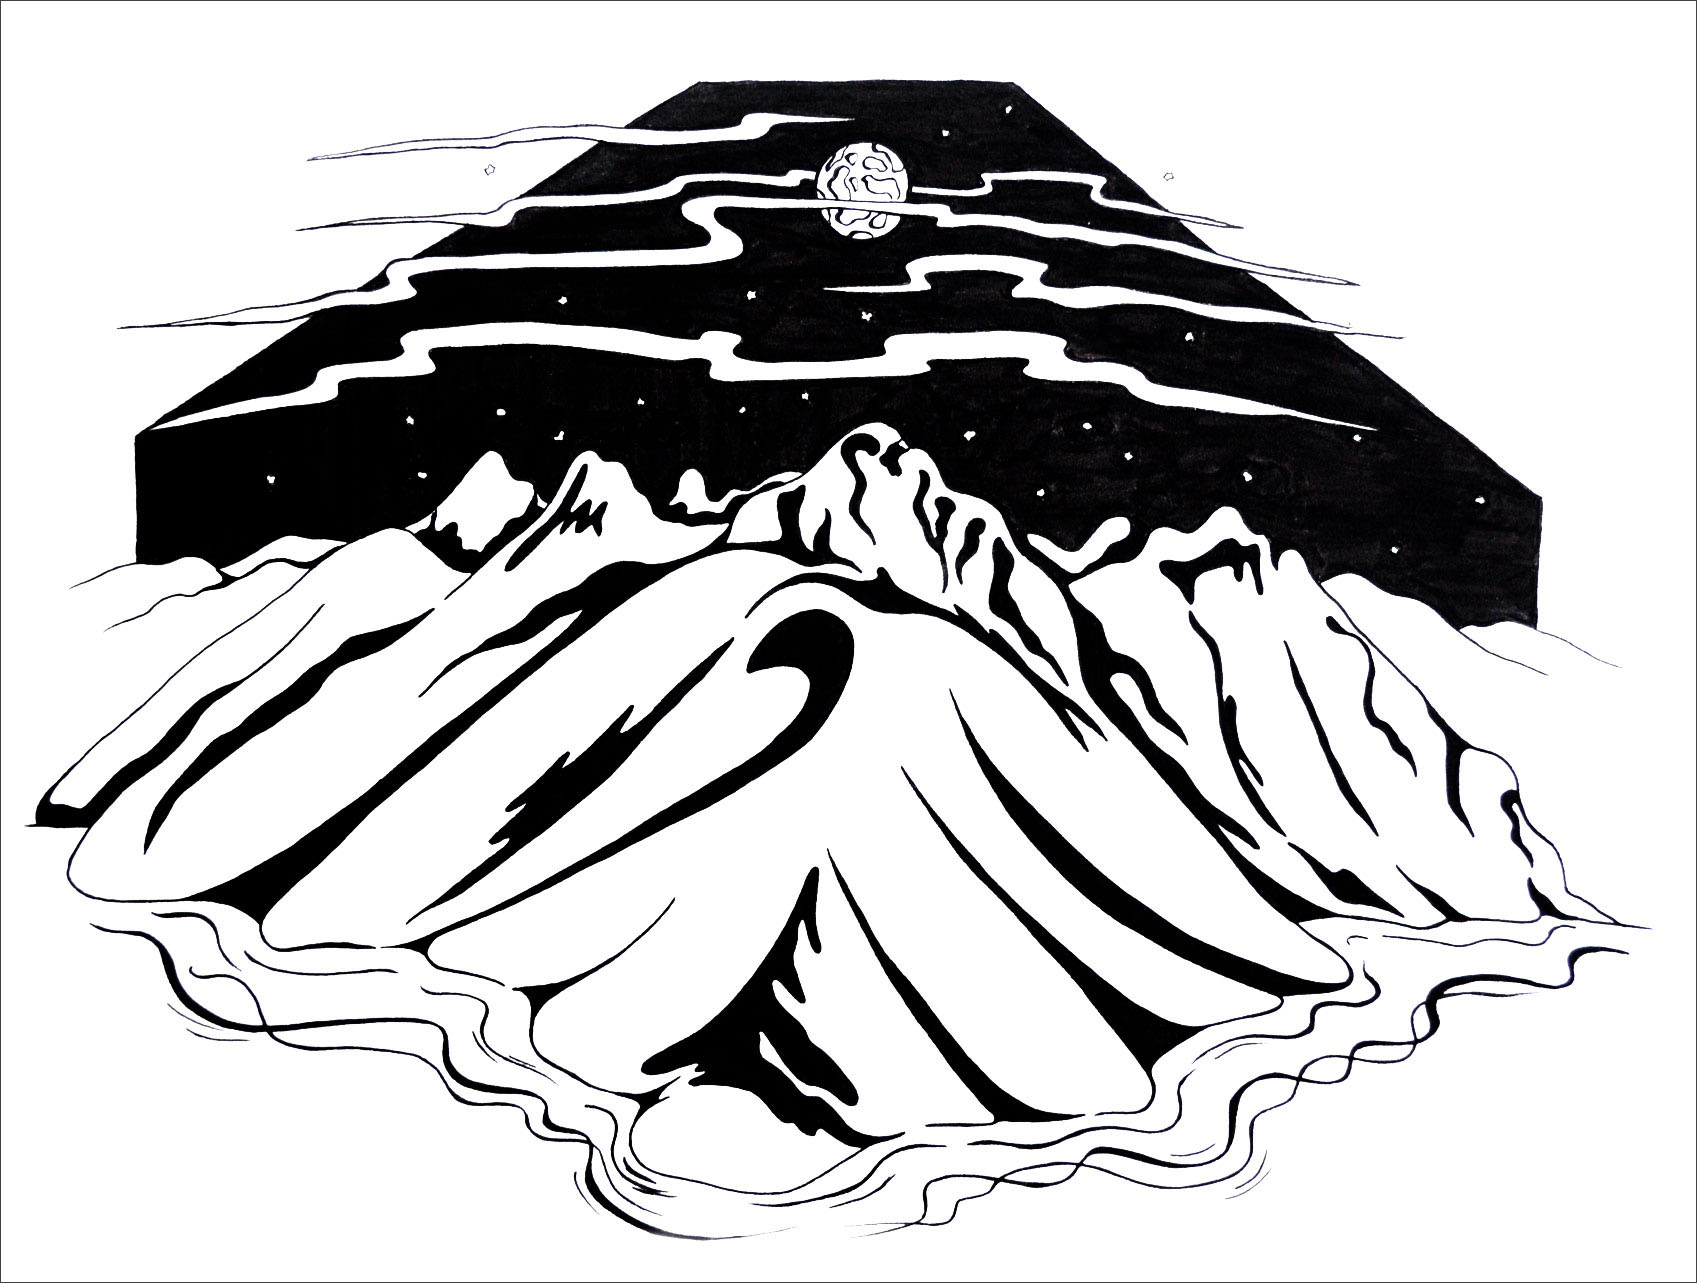 Pen and ink mountain drawing